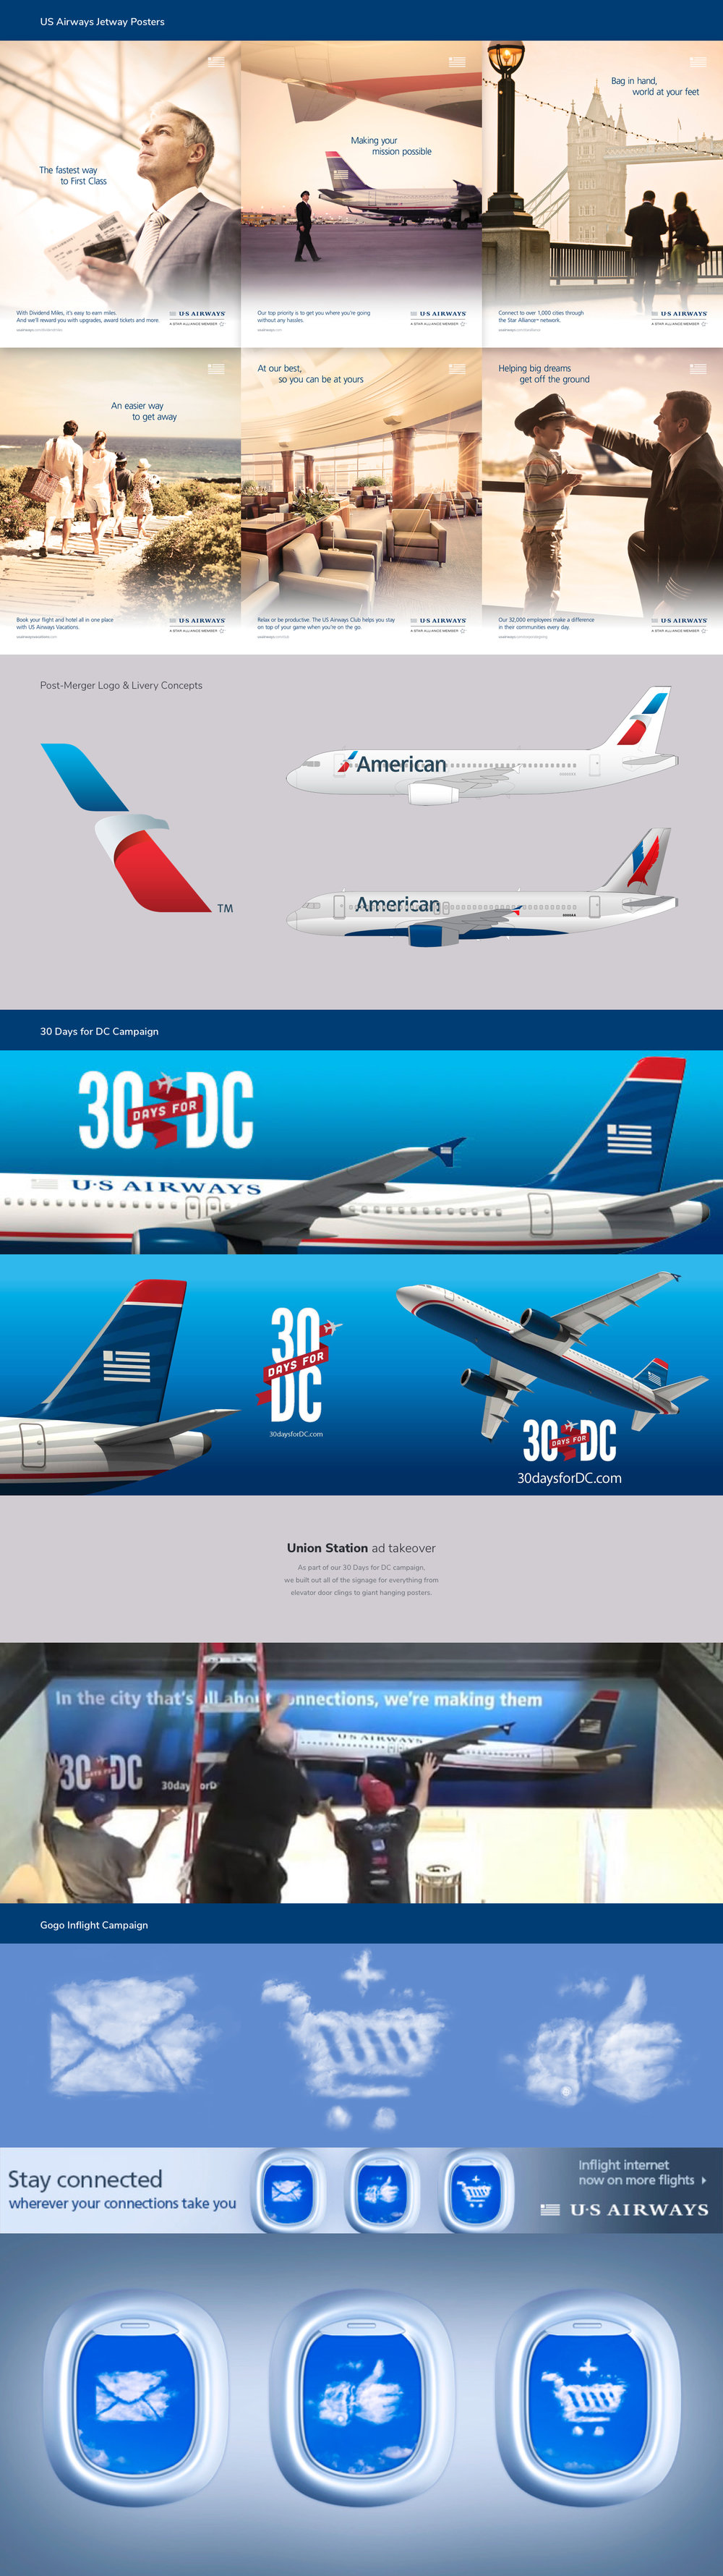 American Airlines_US Airways.jpg